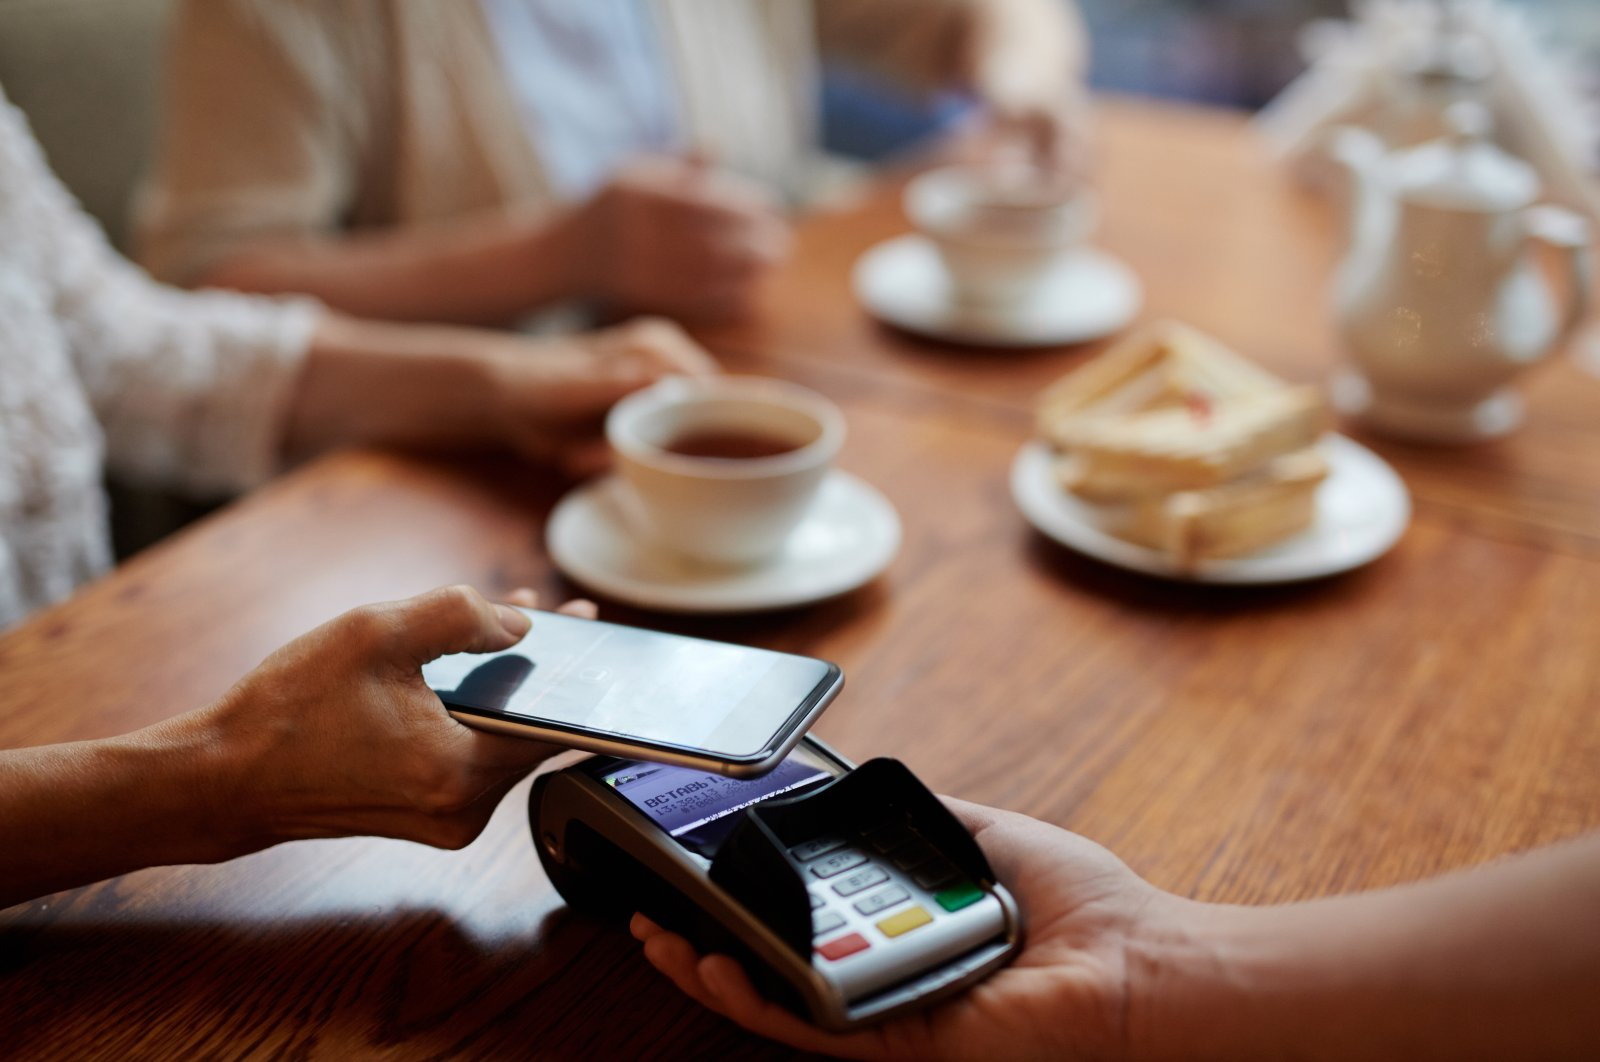 Mobile payments through QR codes are expected to surpass card payments. (Shutterstock Photo)